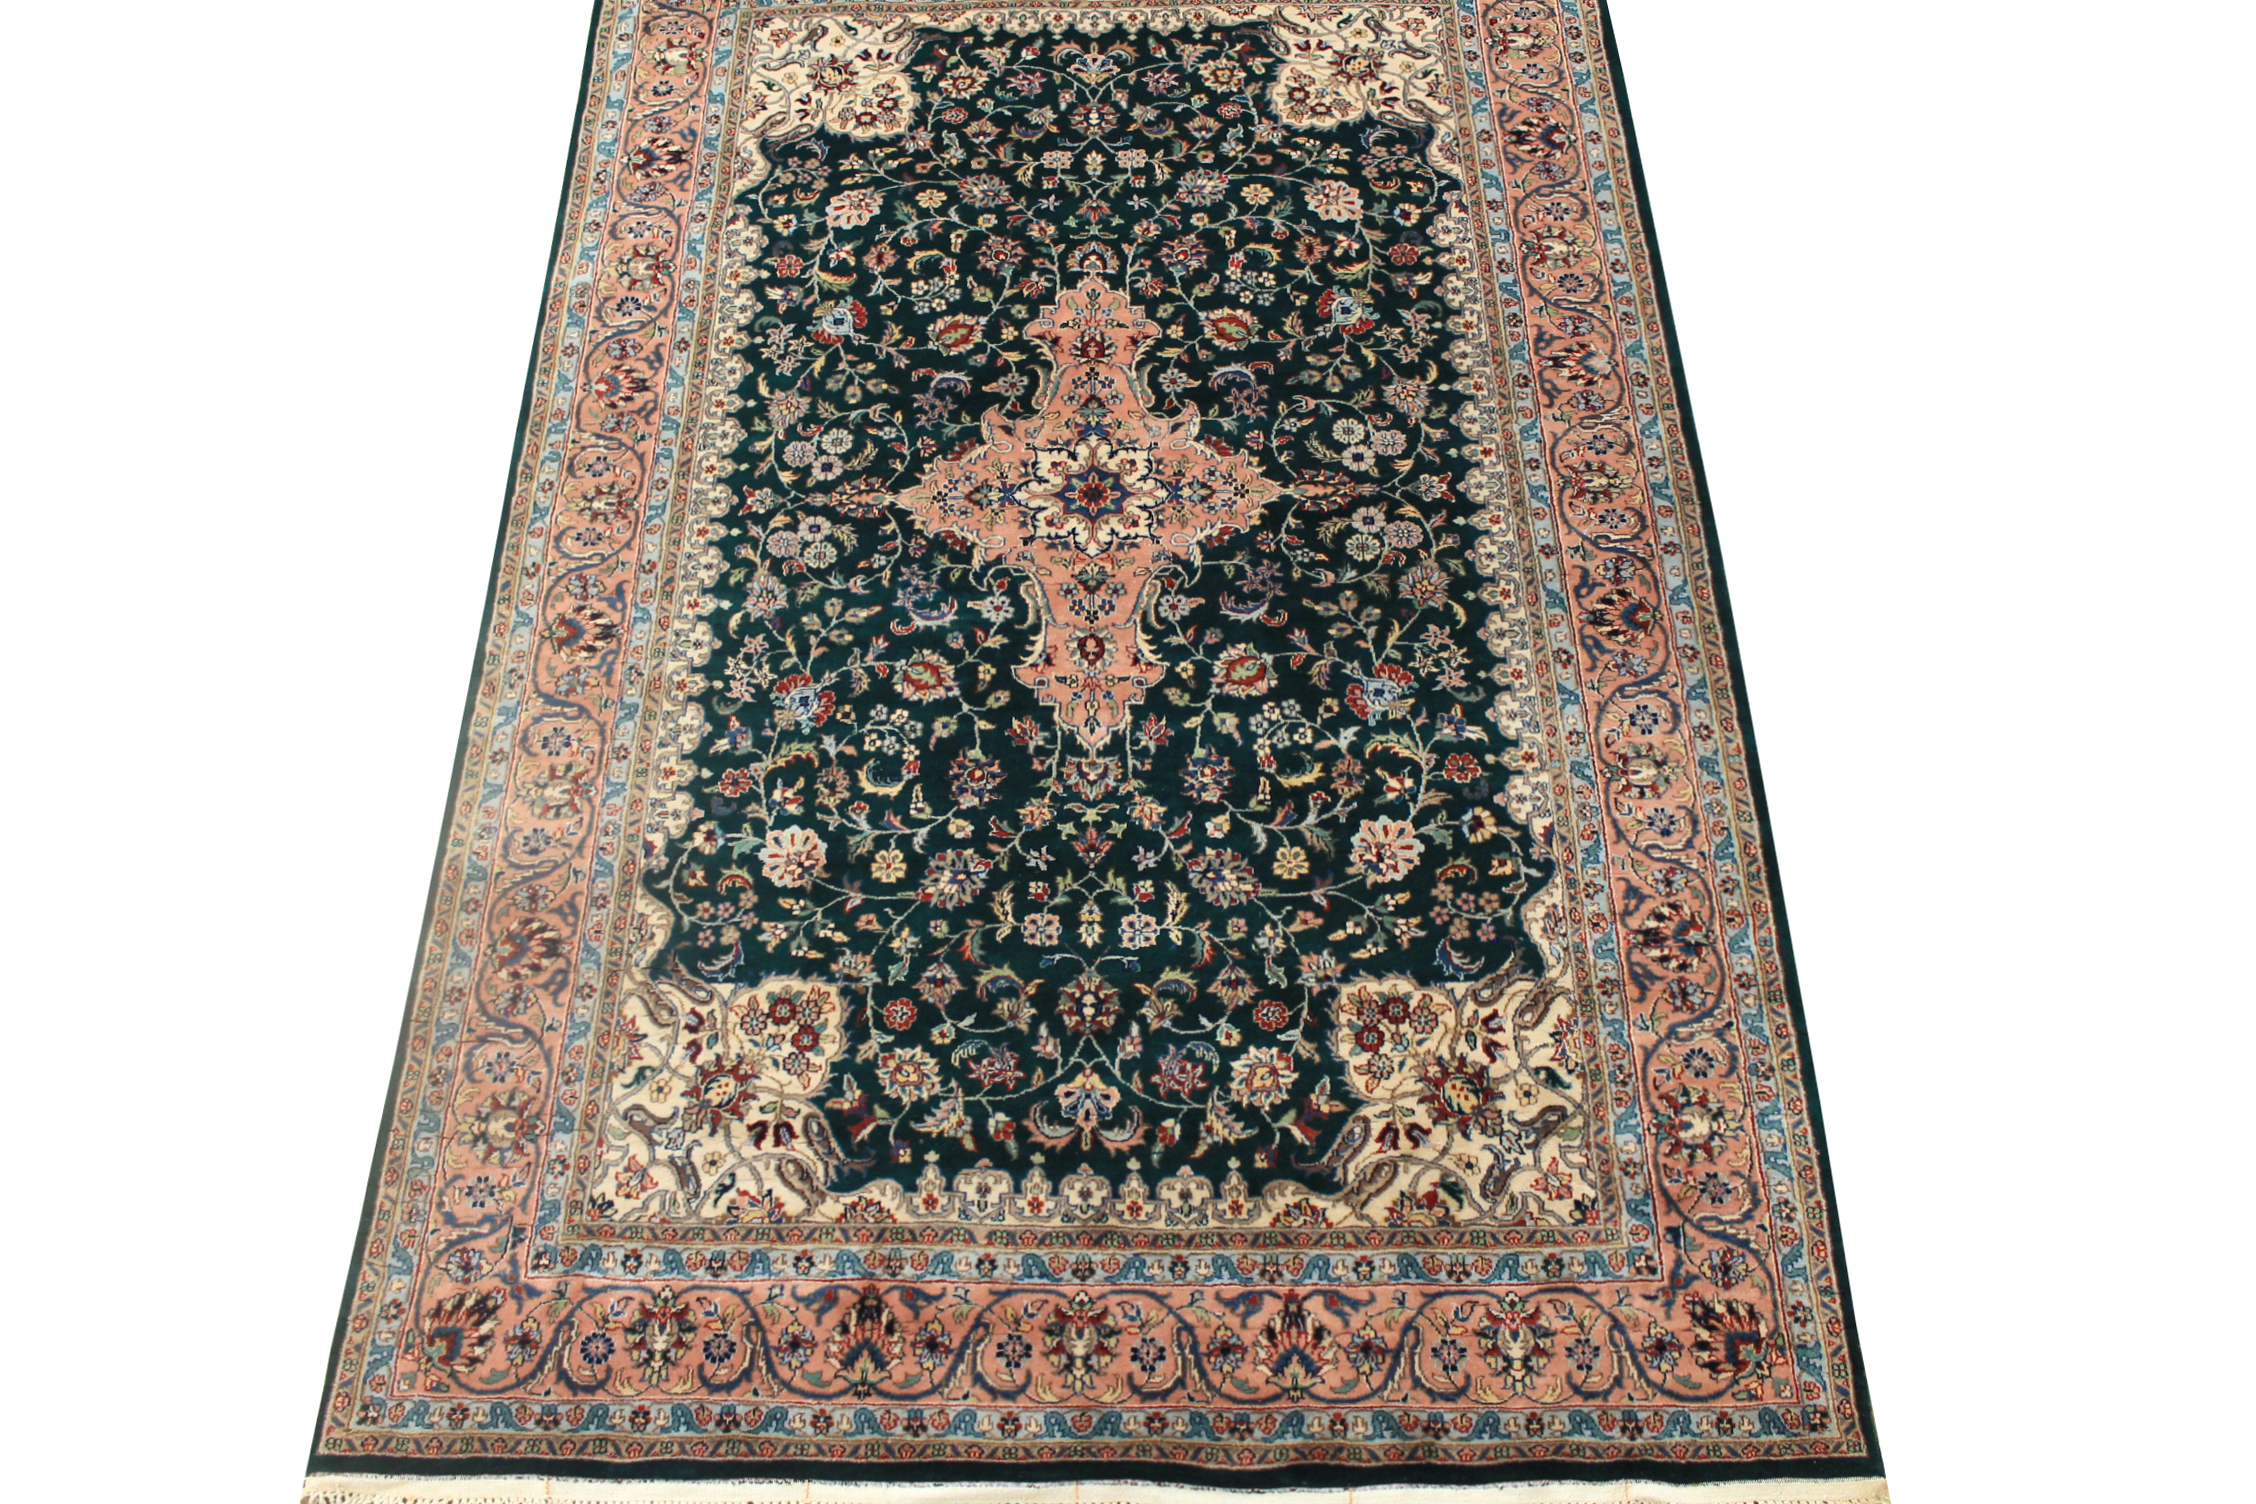 8x10 Traditional Hand Knotted Wool Area Rug - MR0719